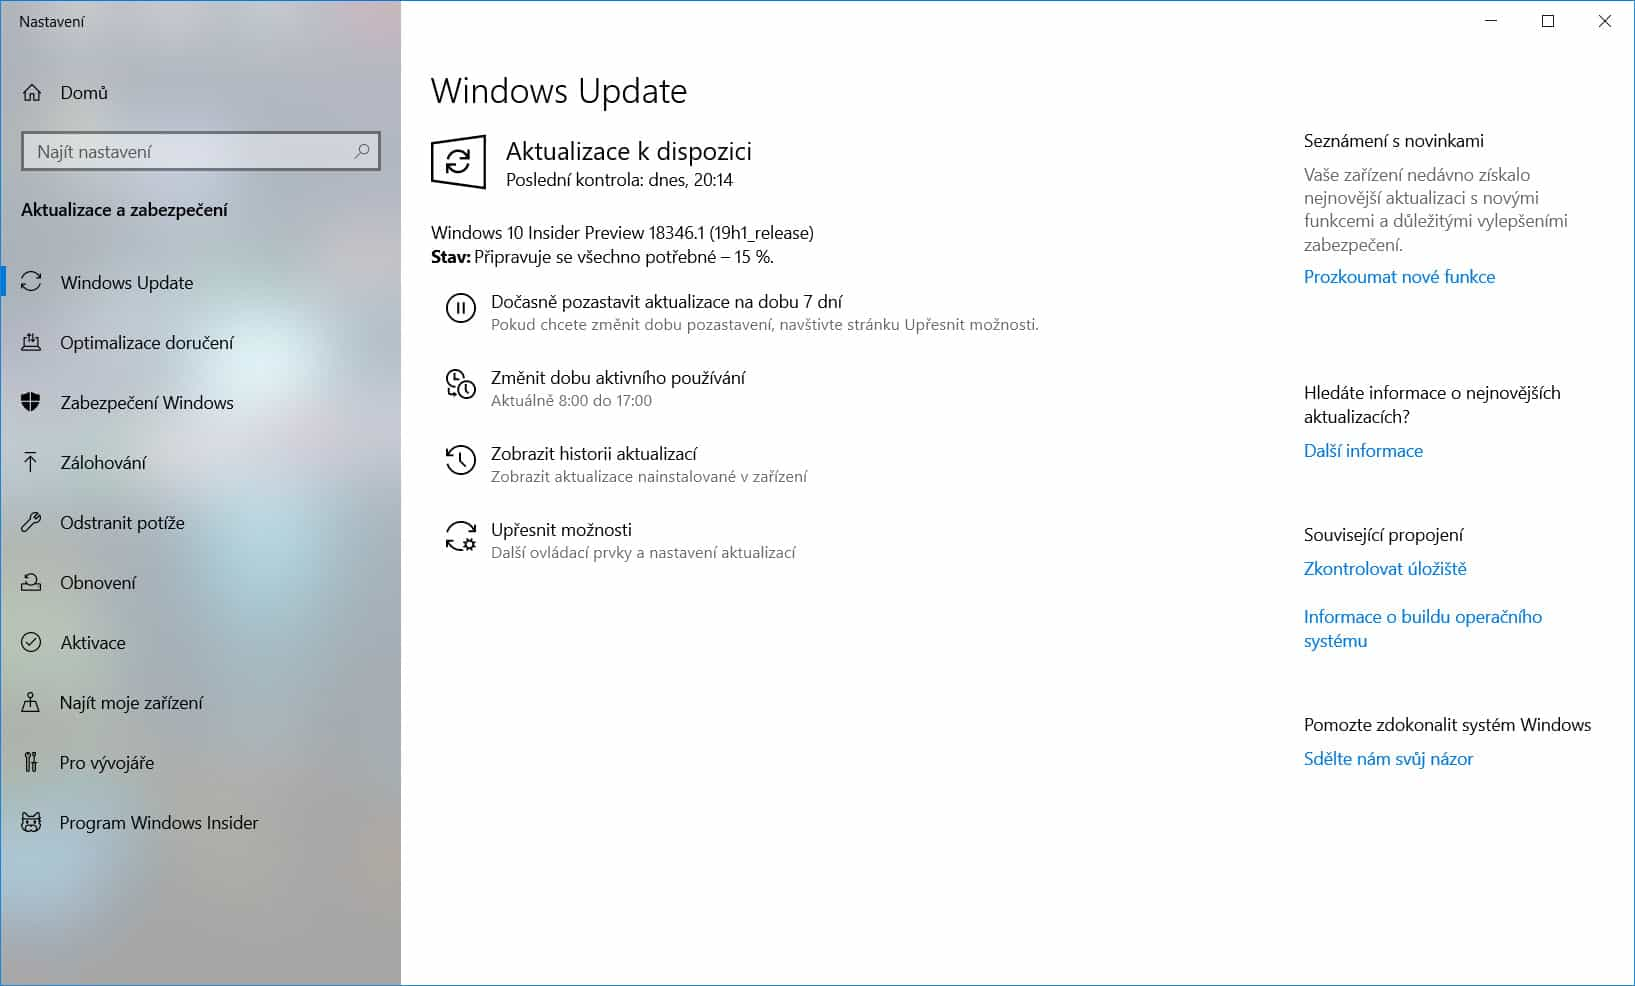 Windows 10 Insider Preview Build 18346 1